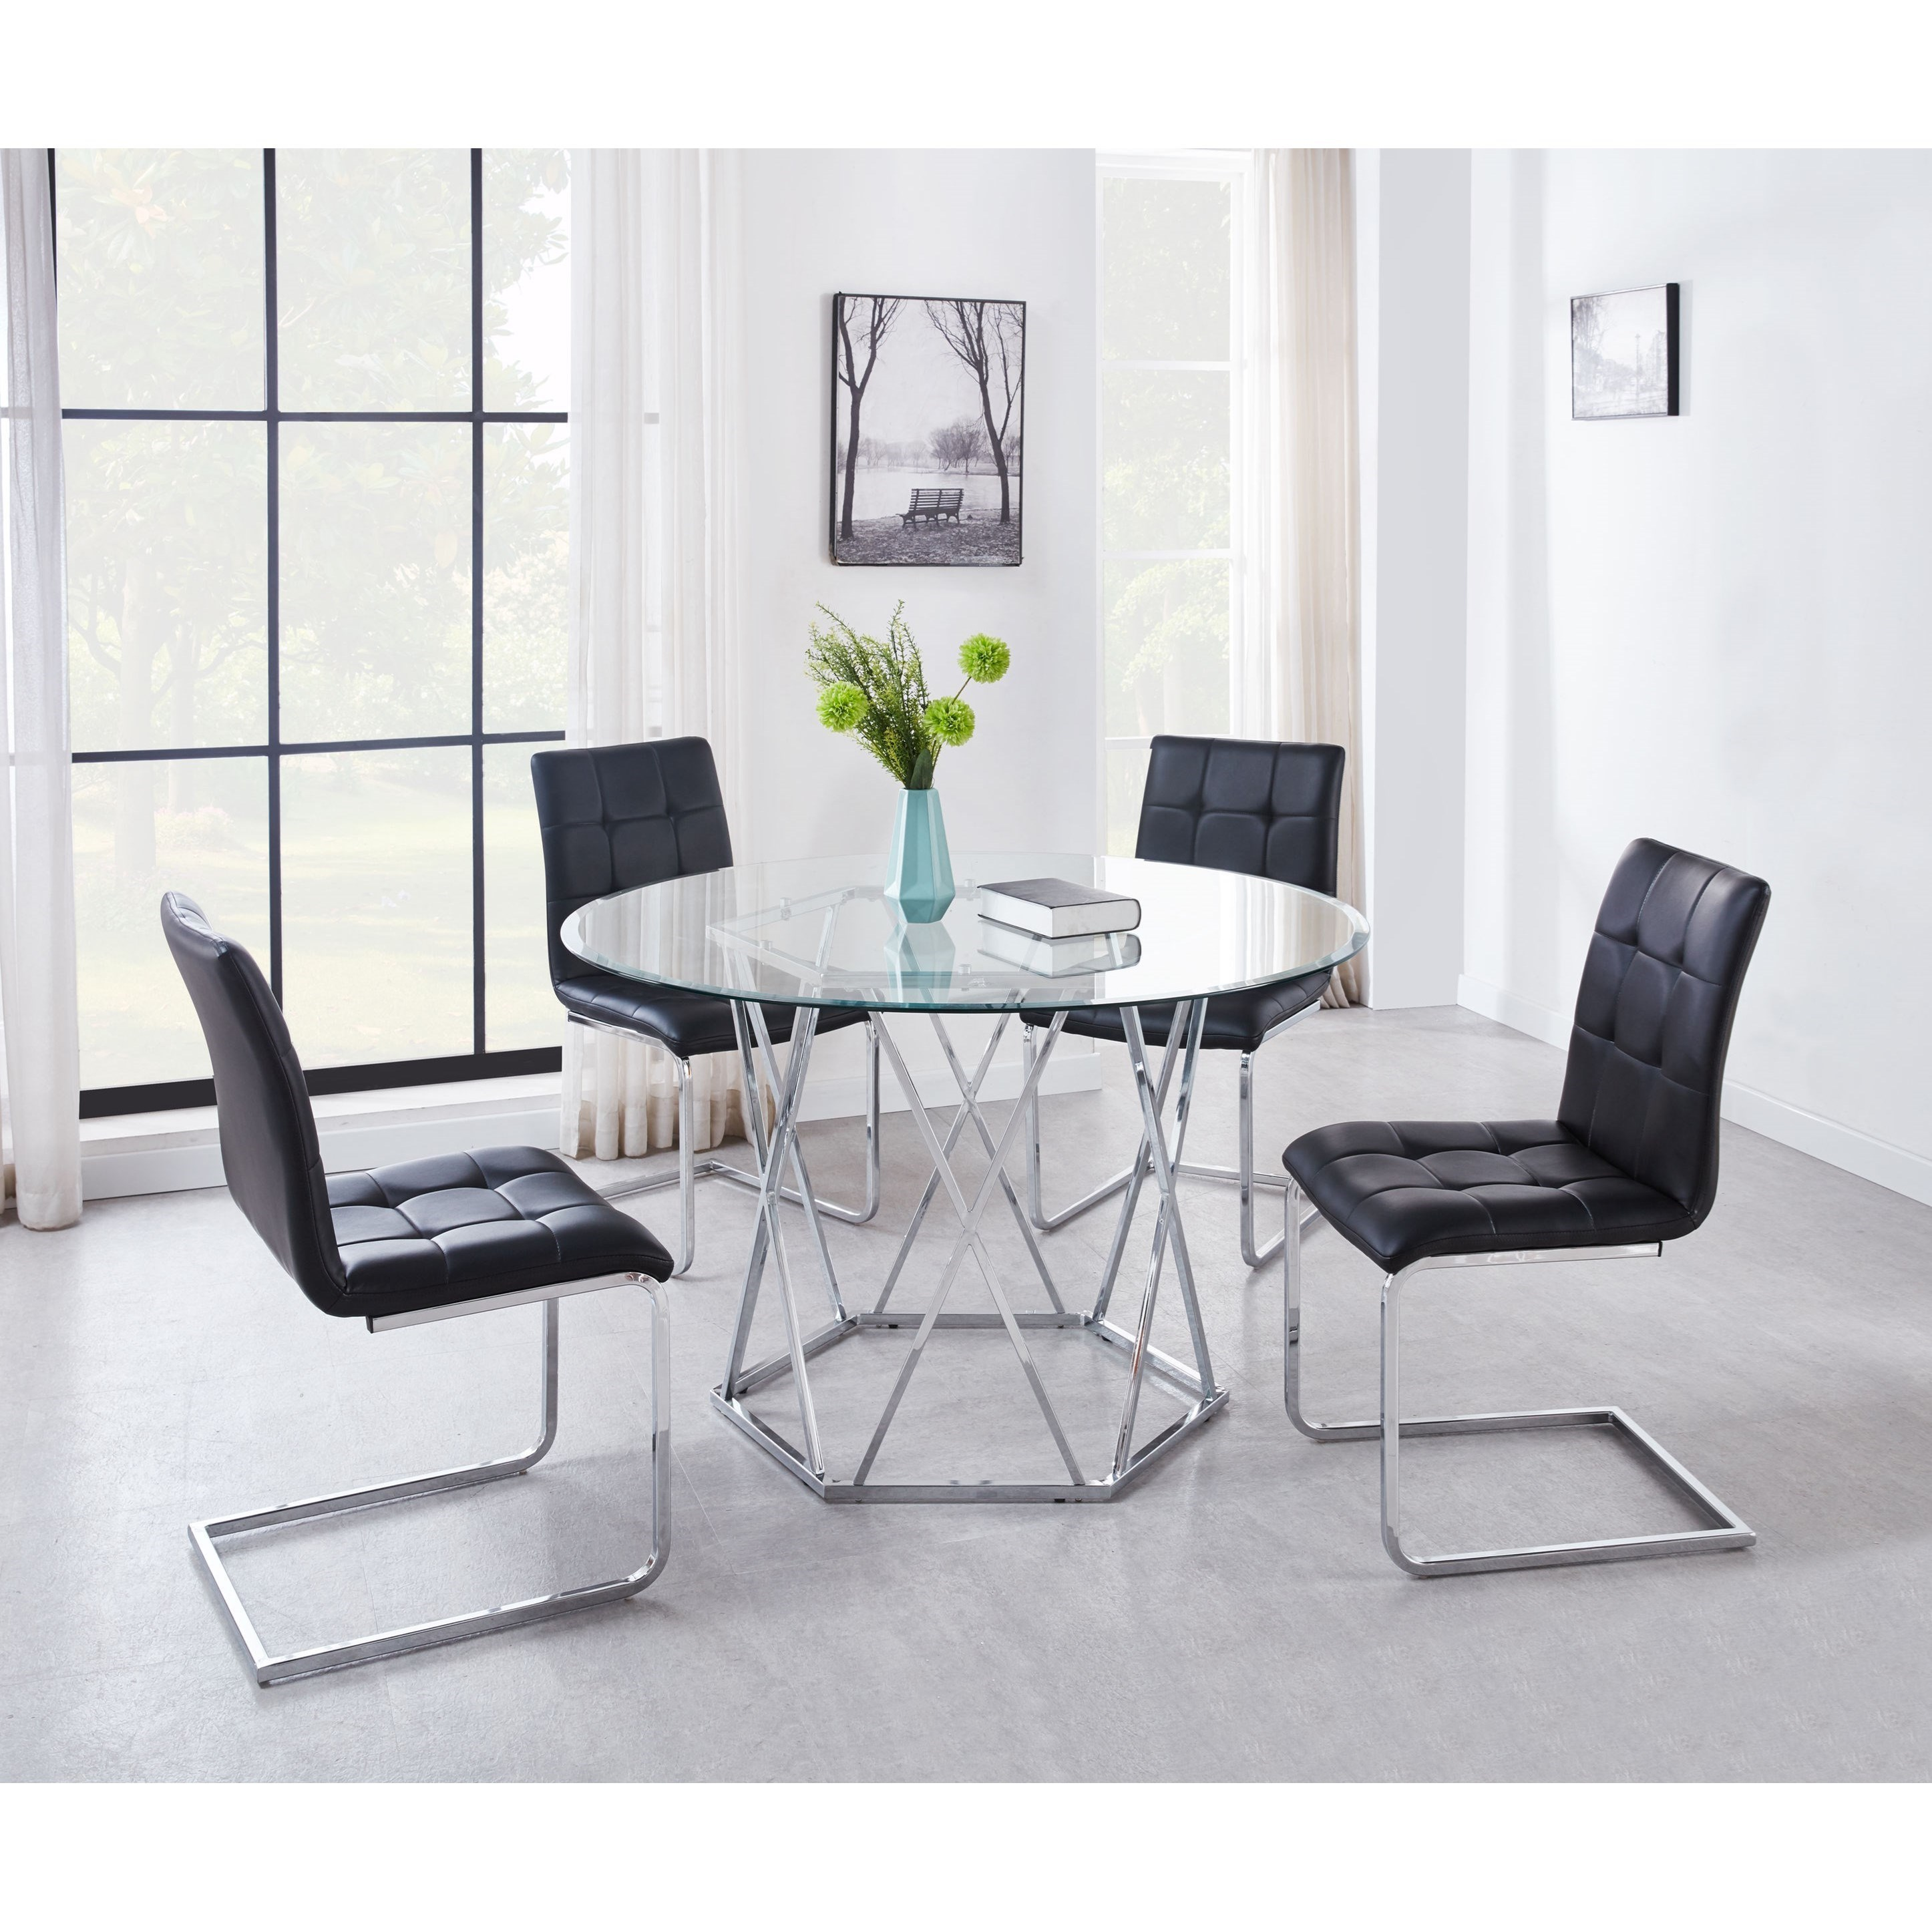 Picture of: 5pc Dining Table Set Modern Kitchen Room Furniture W 4 Chairs Black White Color